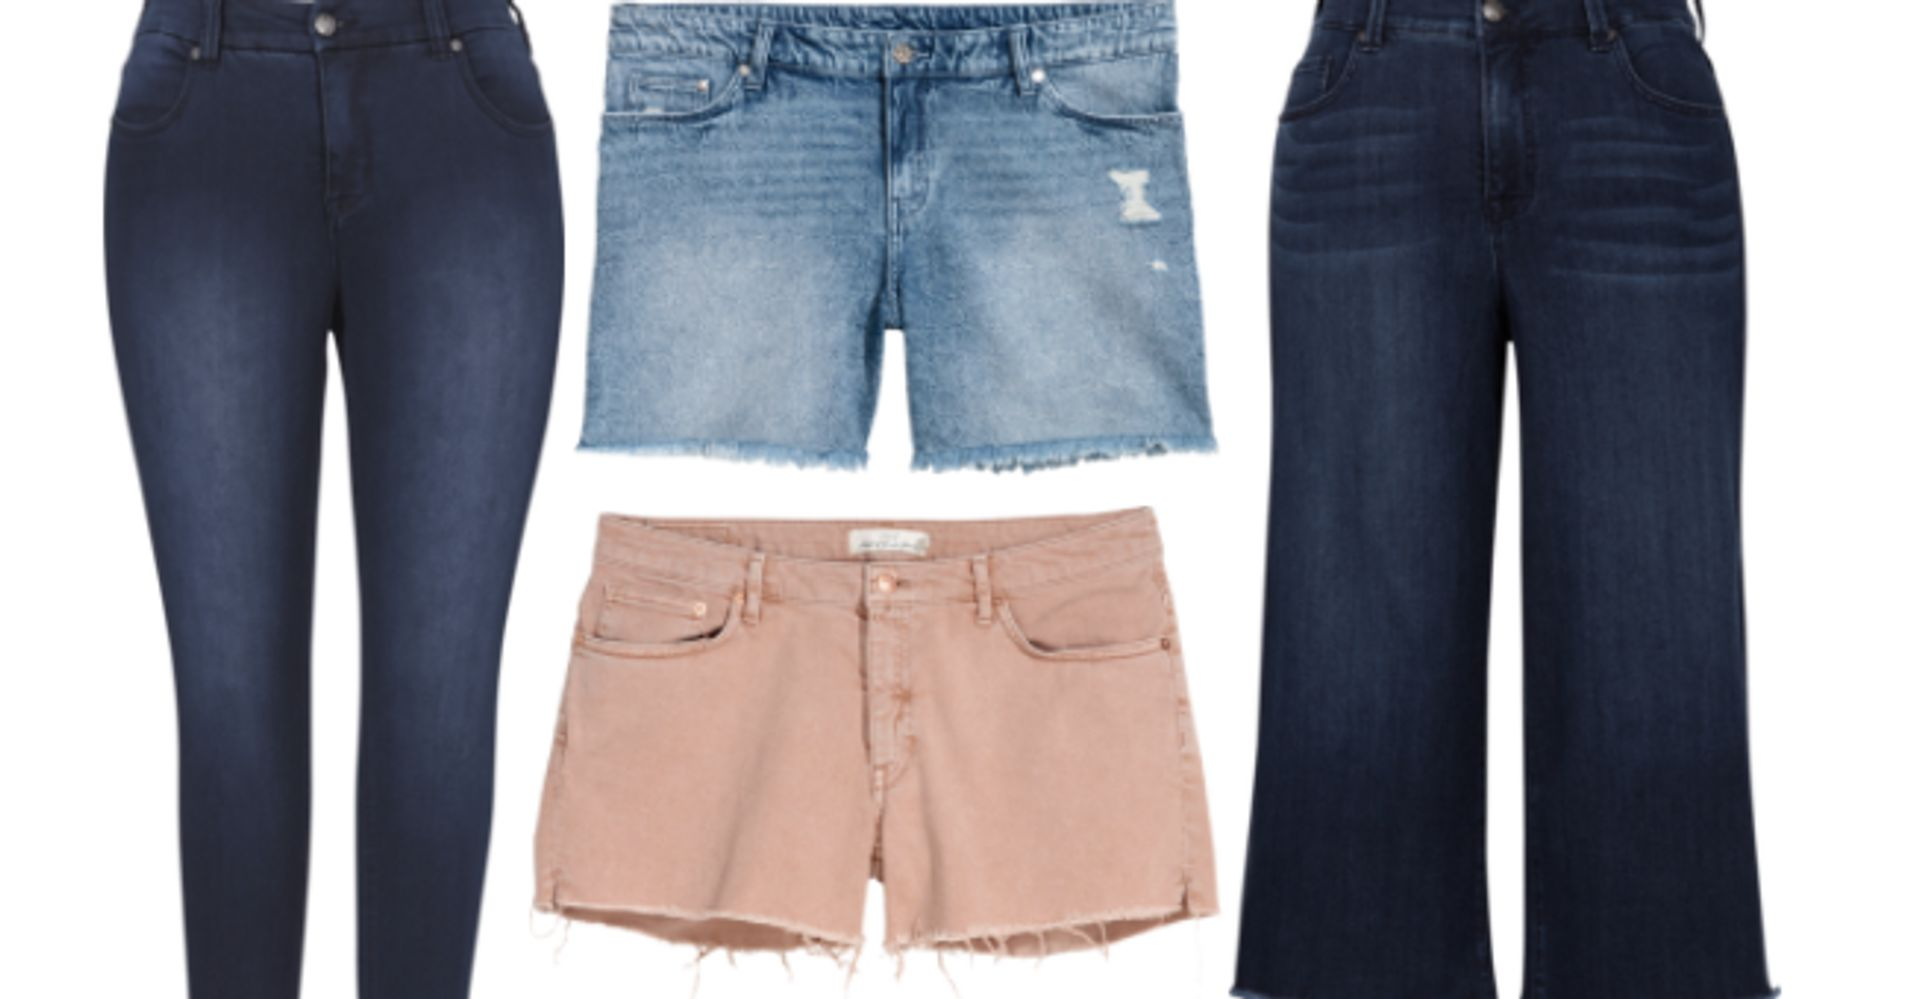 39ce36dc6f224 17 Sites For Plus-Size Jeans And Shorts That Are Stylish And Affordable |  HuffPost Life